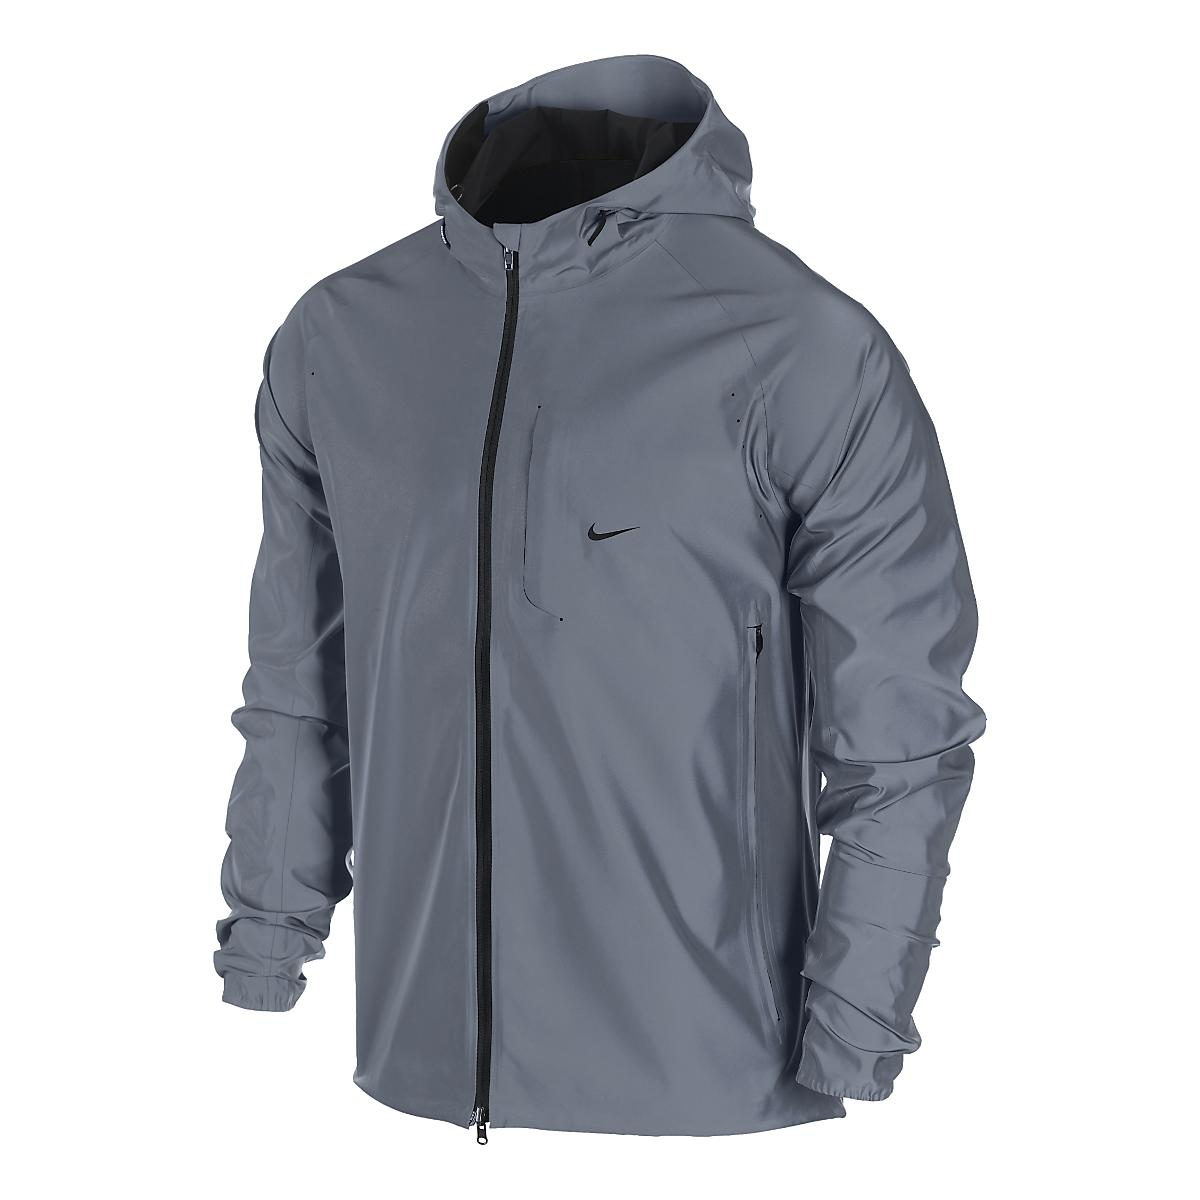 06c8c1f7eb6b Mens Nike Vapor Flash Running Jackets at Road Runner Sports